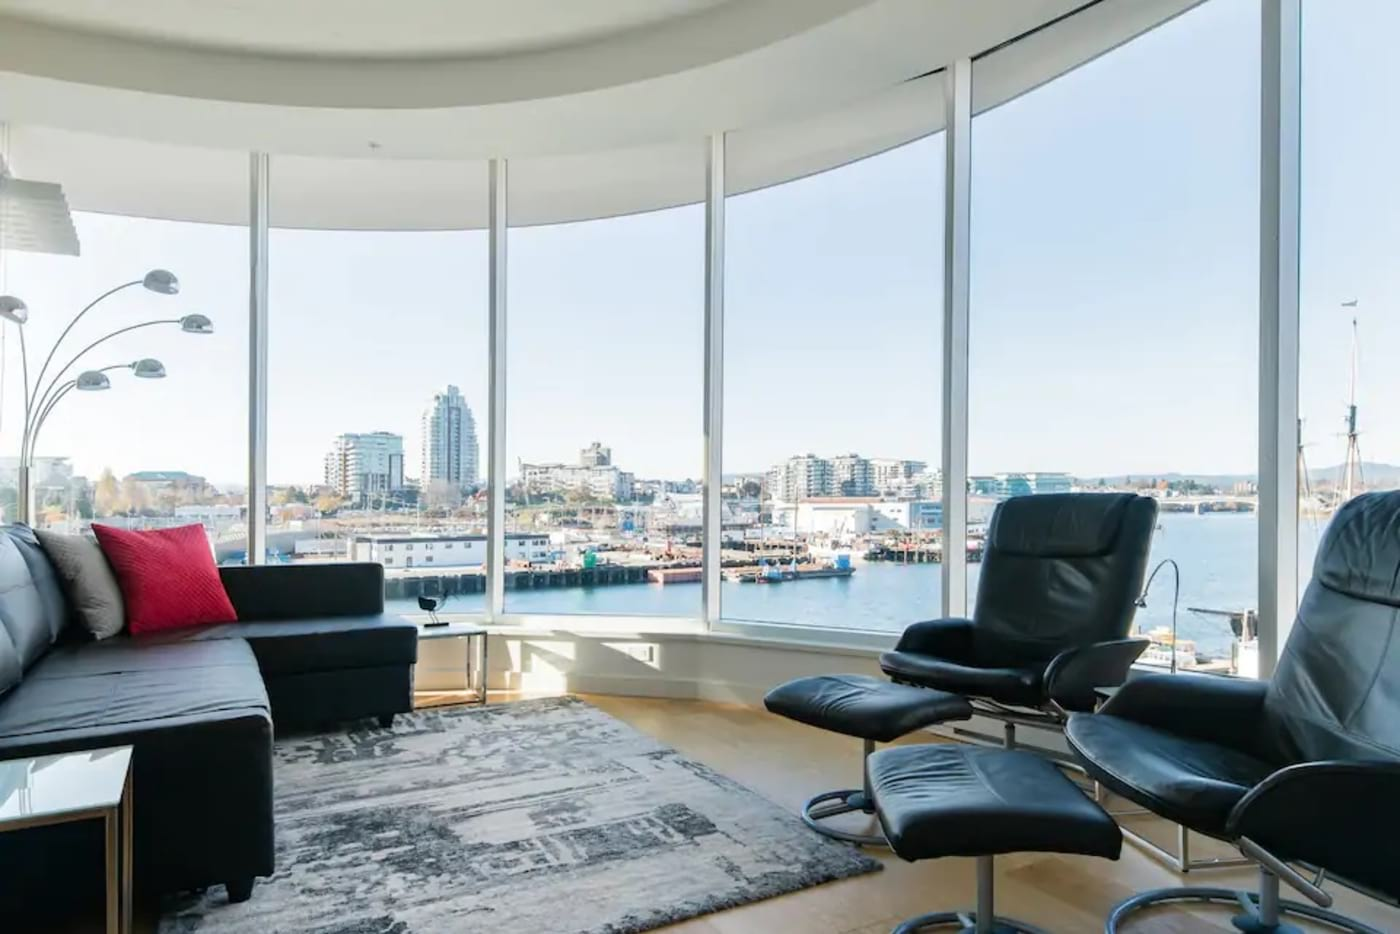 Best Airbnb in Victoria with a view – Waterfront Studio Downtown Victoria